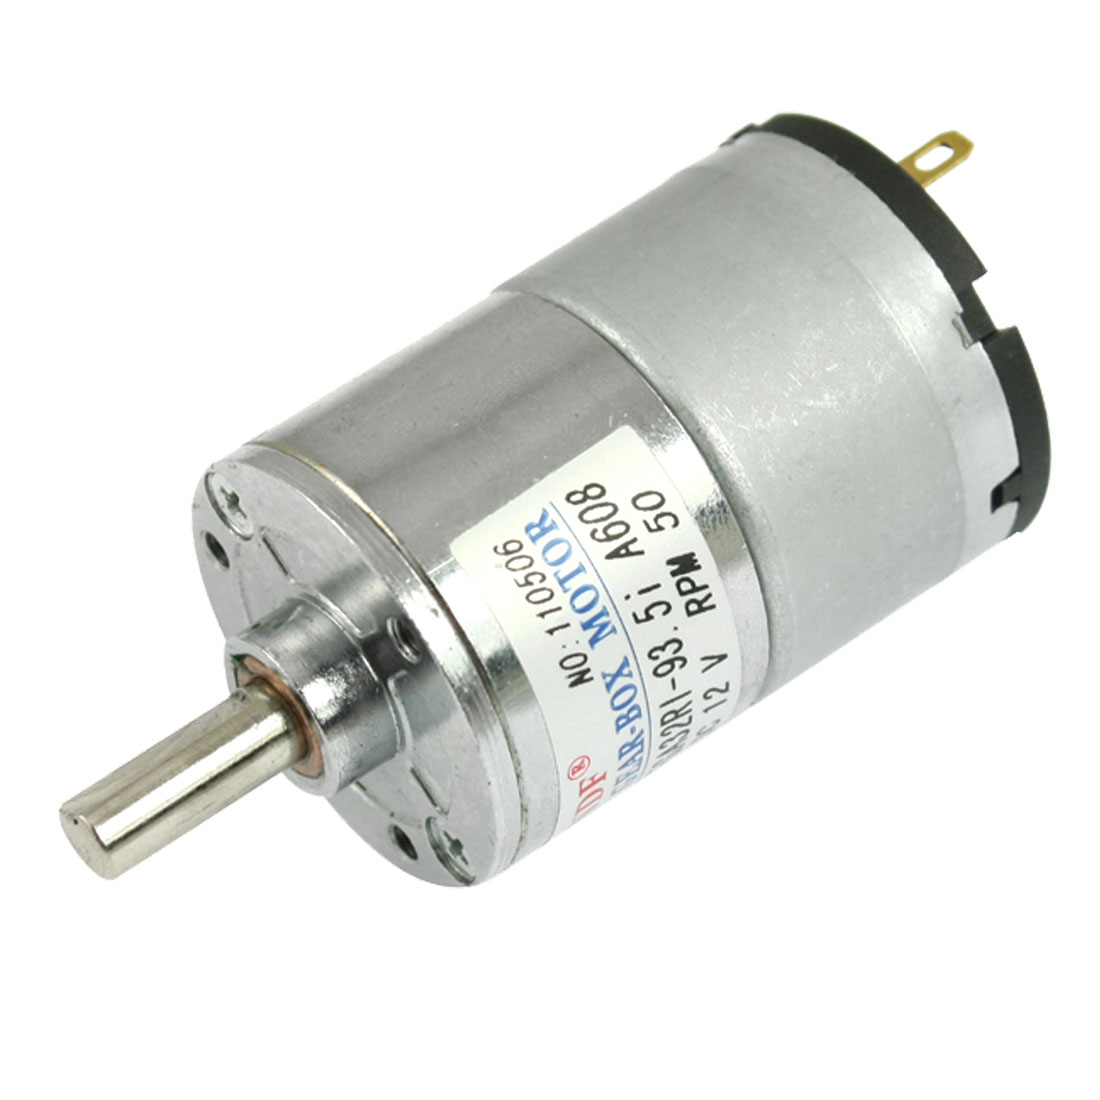 DC 12V 50mA 50RPM 2.3Kg-cm High Torque Permanent Magnetic DC Gear Motor